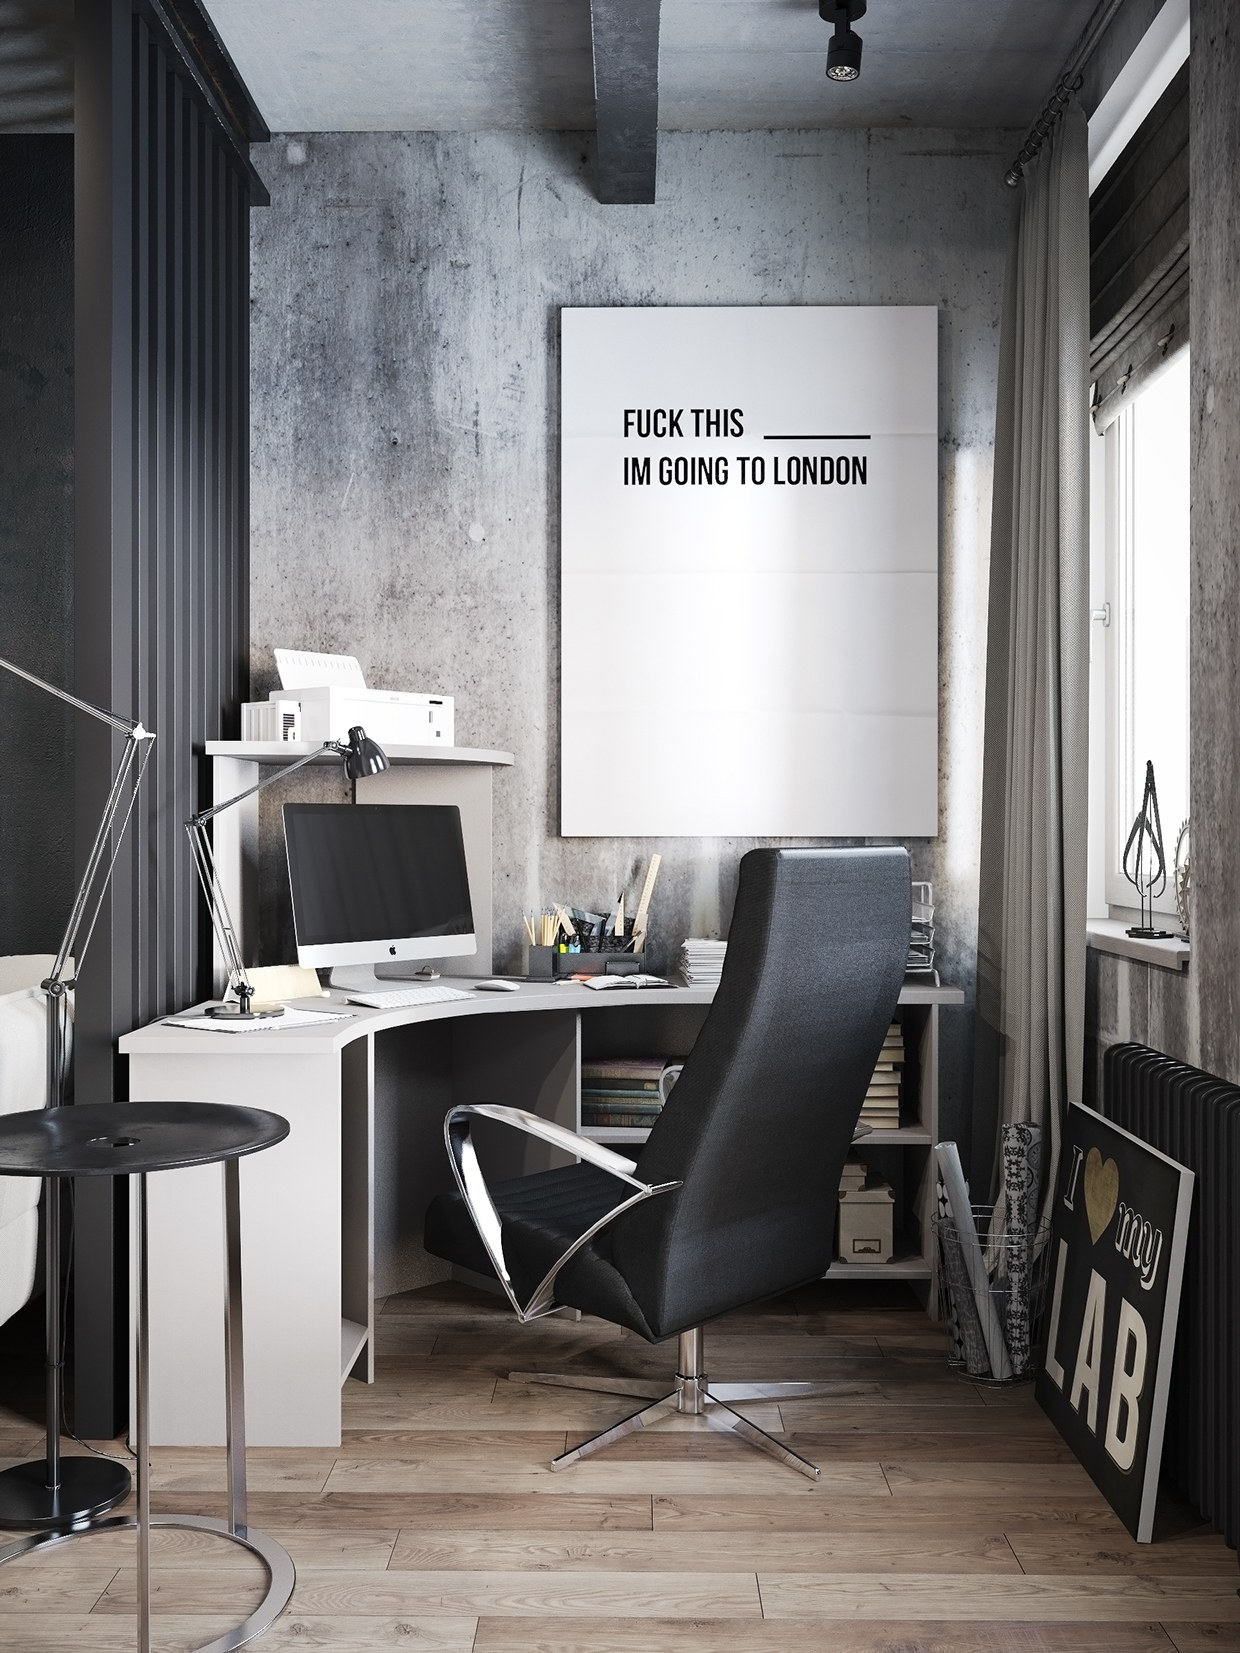 Slick Home Office - A hipster inspired design concept for russian gaming magazine editor